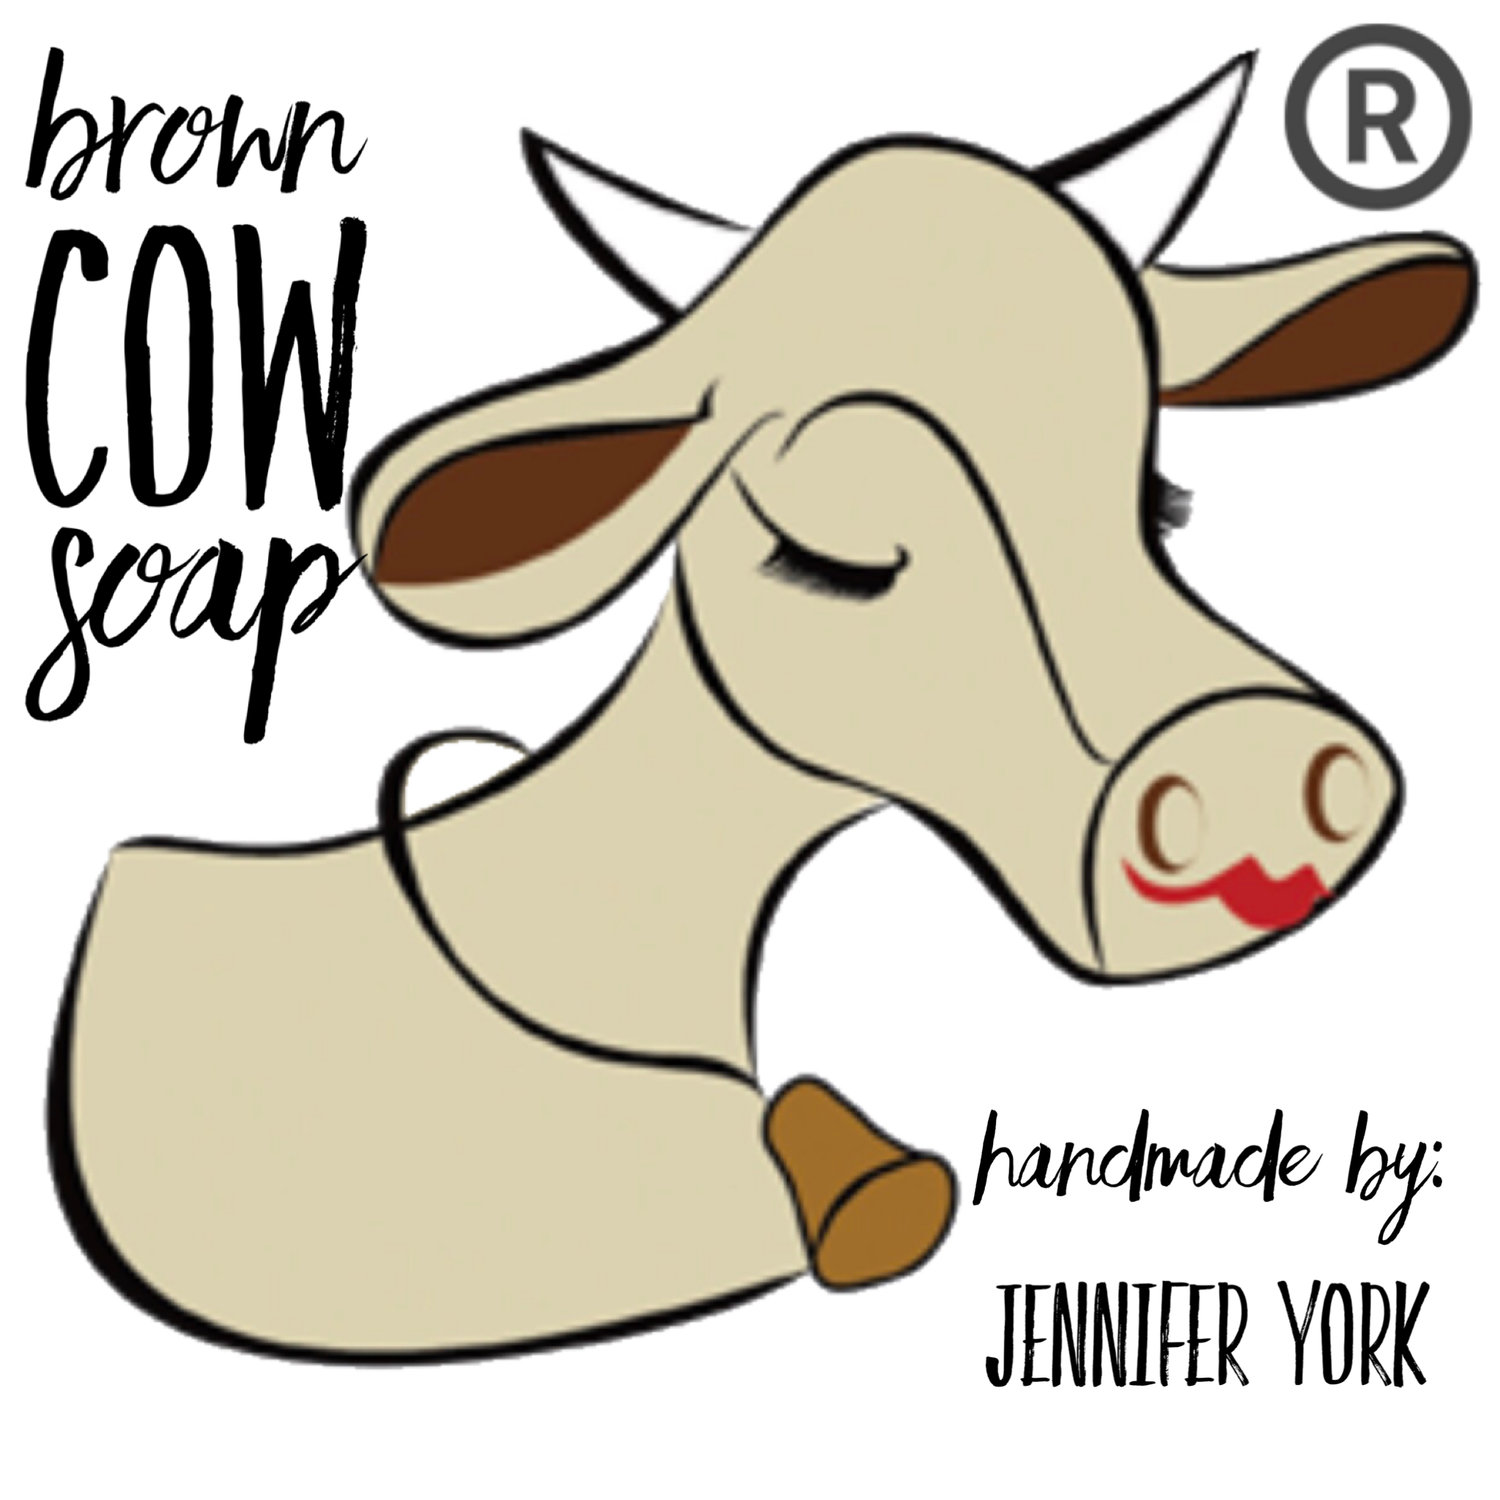 Brown Cow Soap